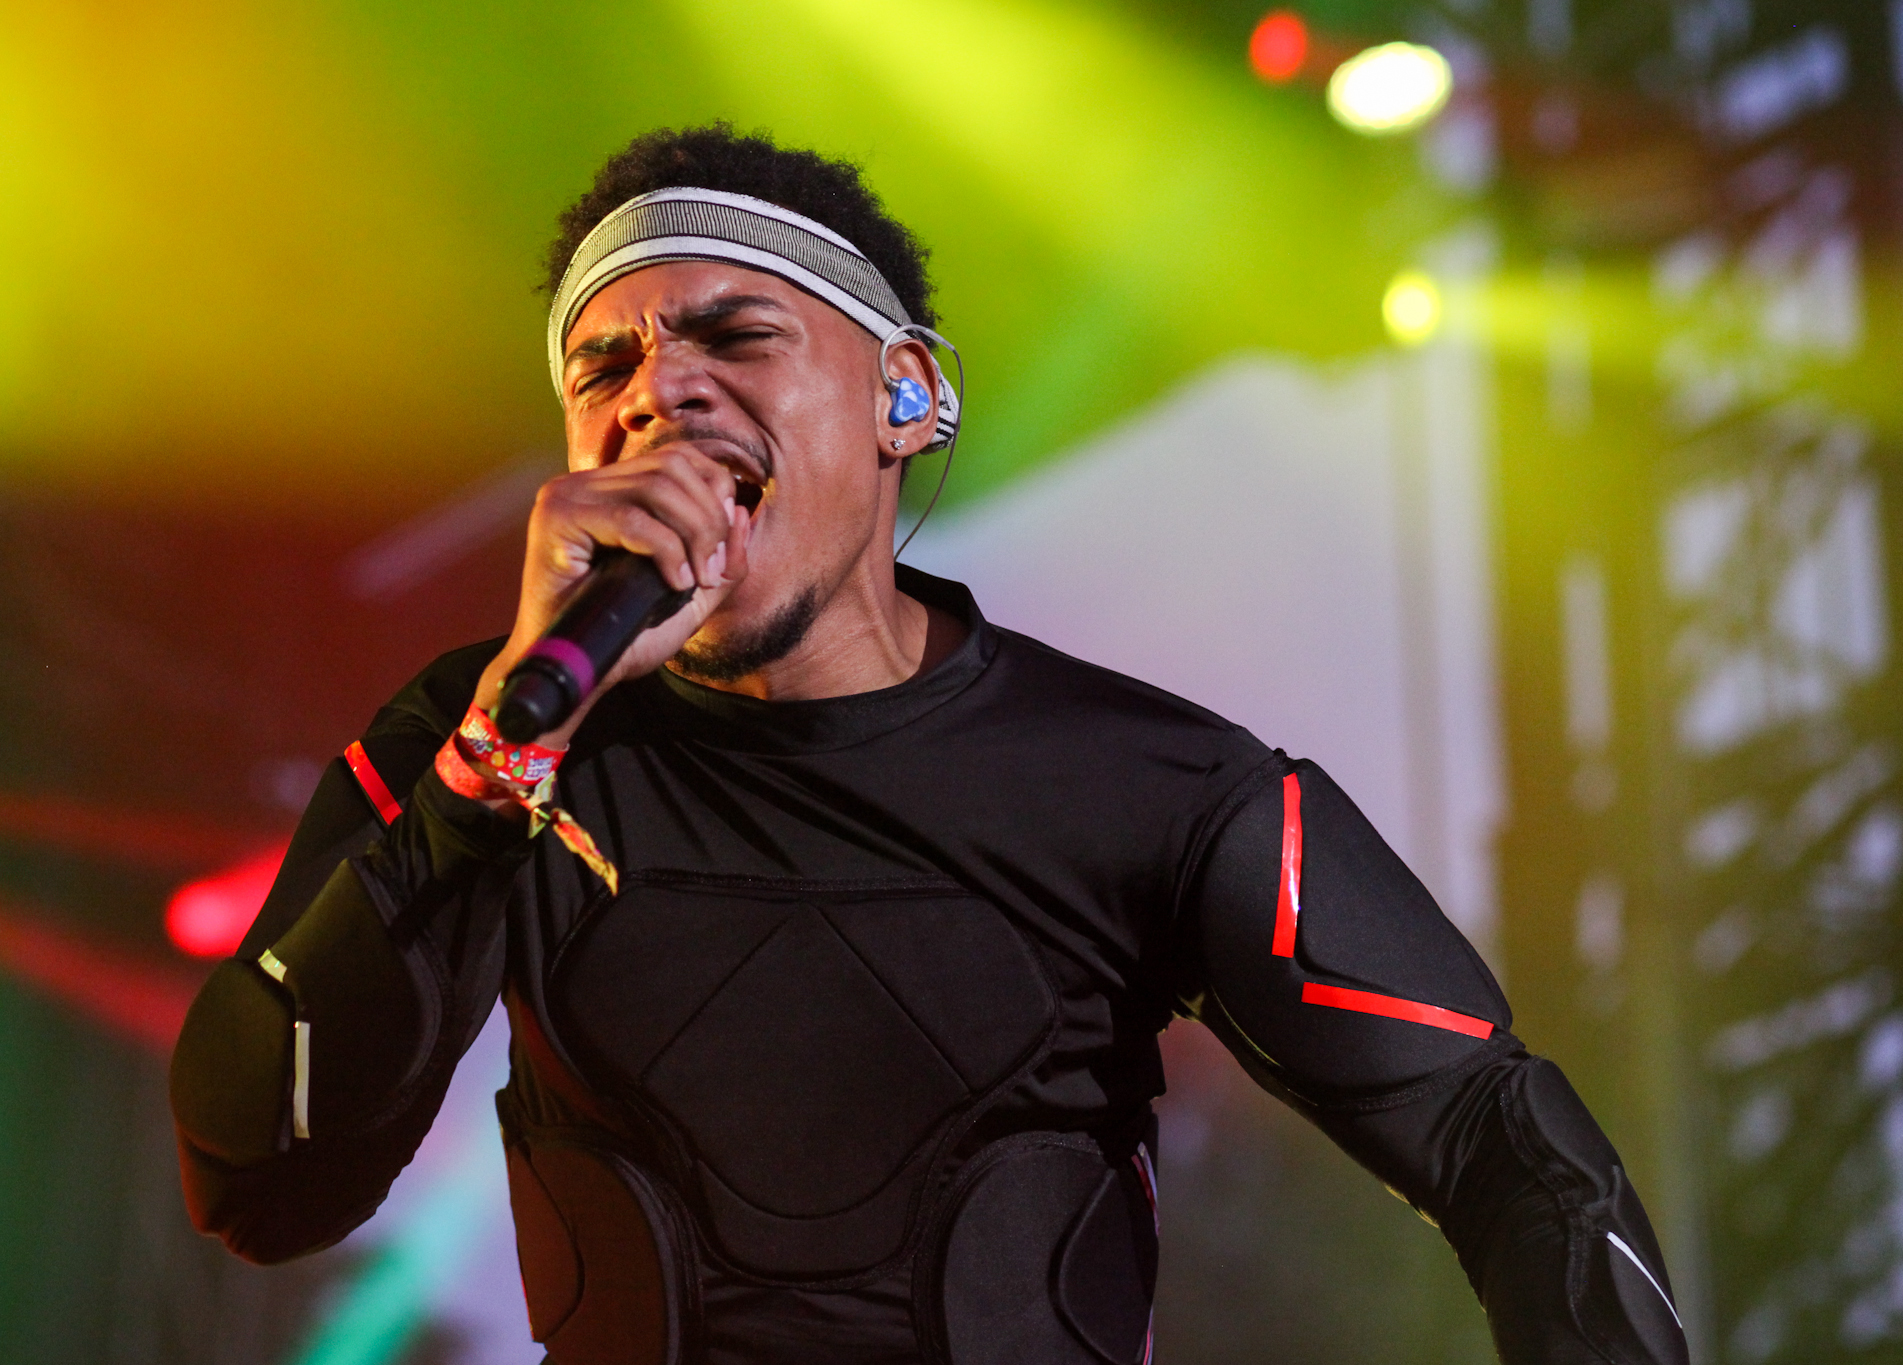 The 5 best things we saw on Sunday at Pitchfork